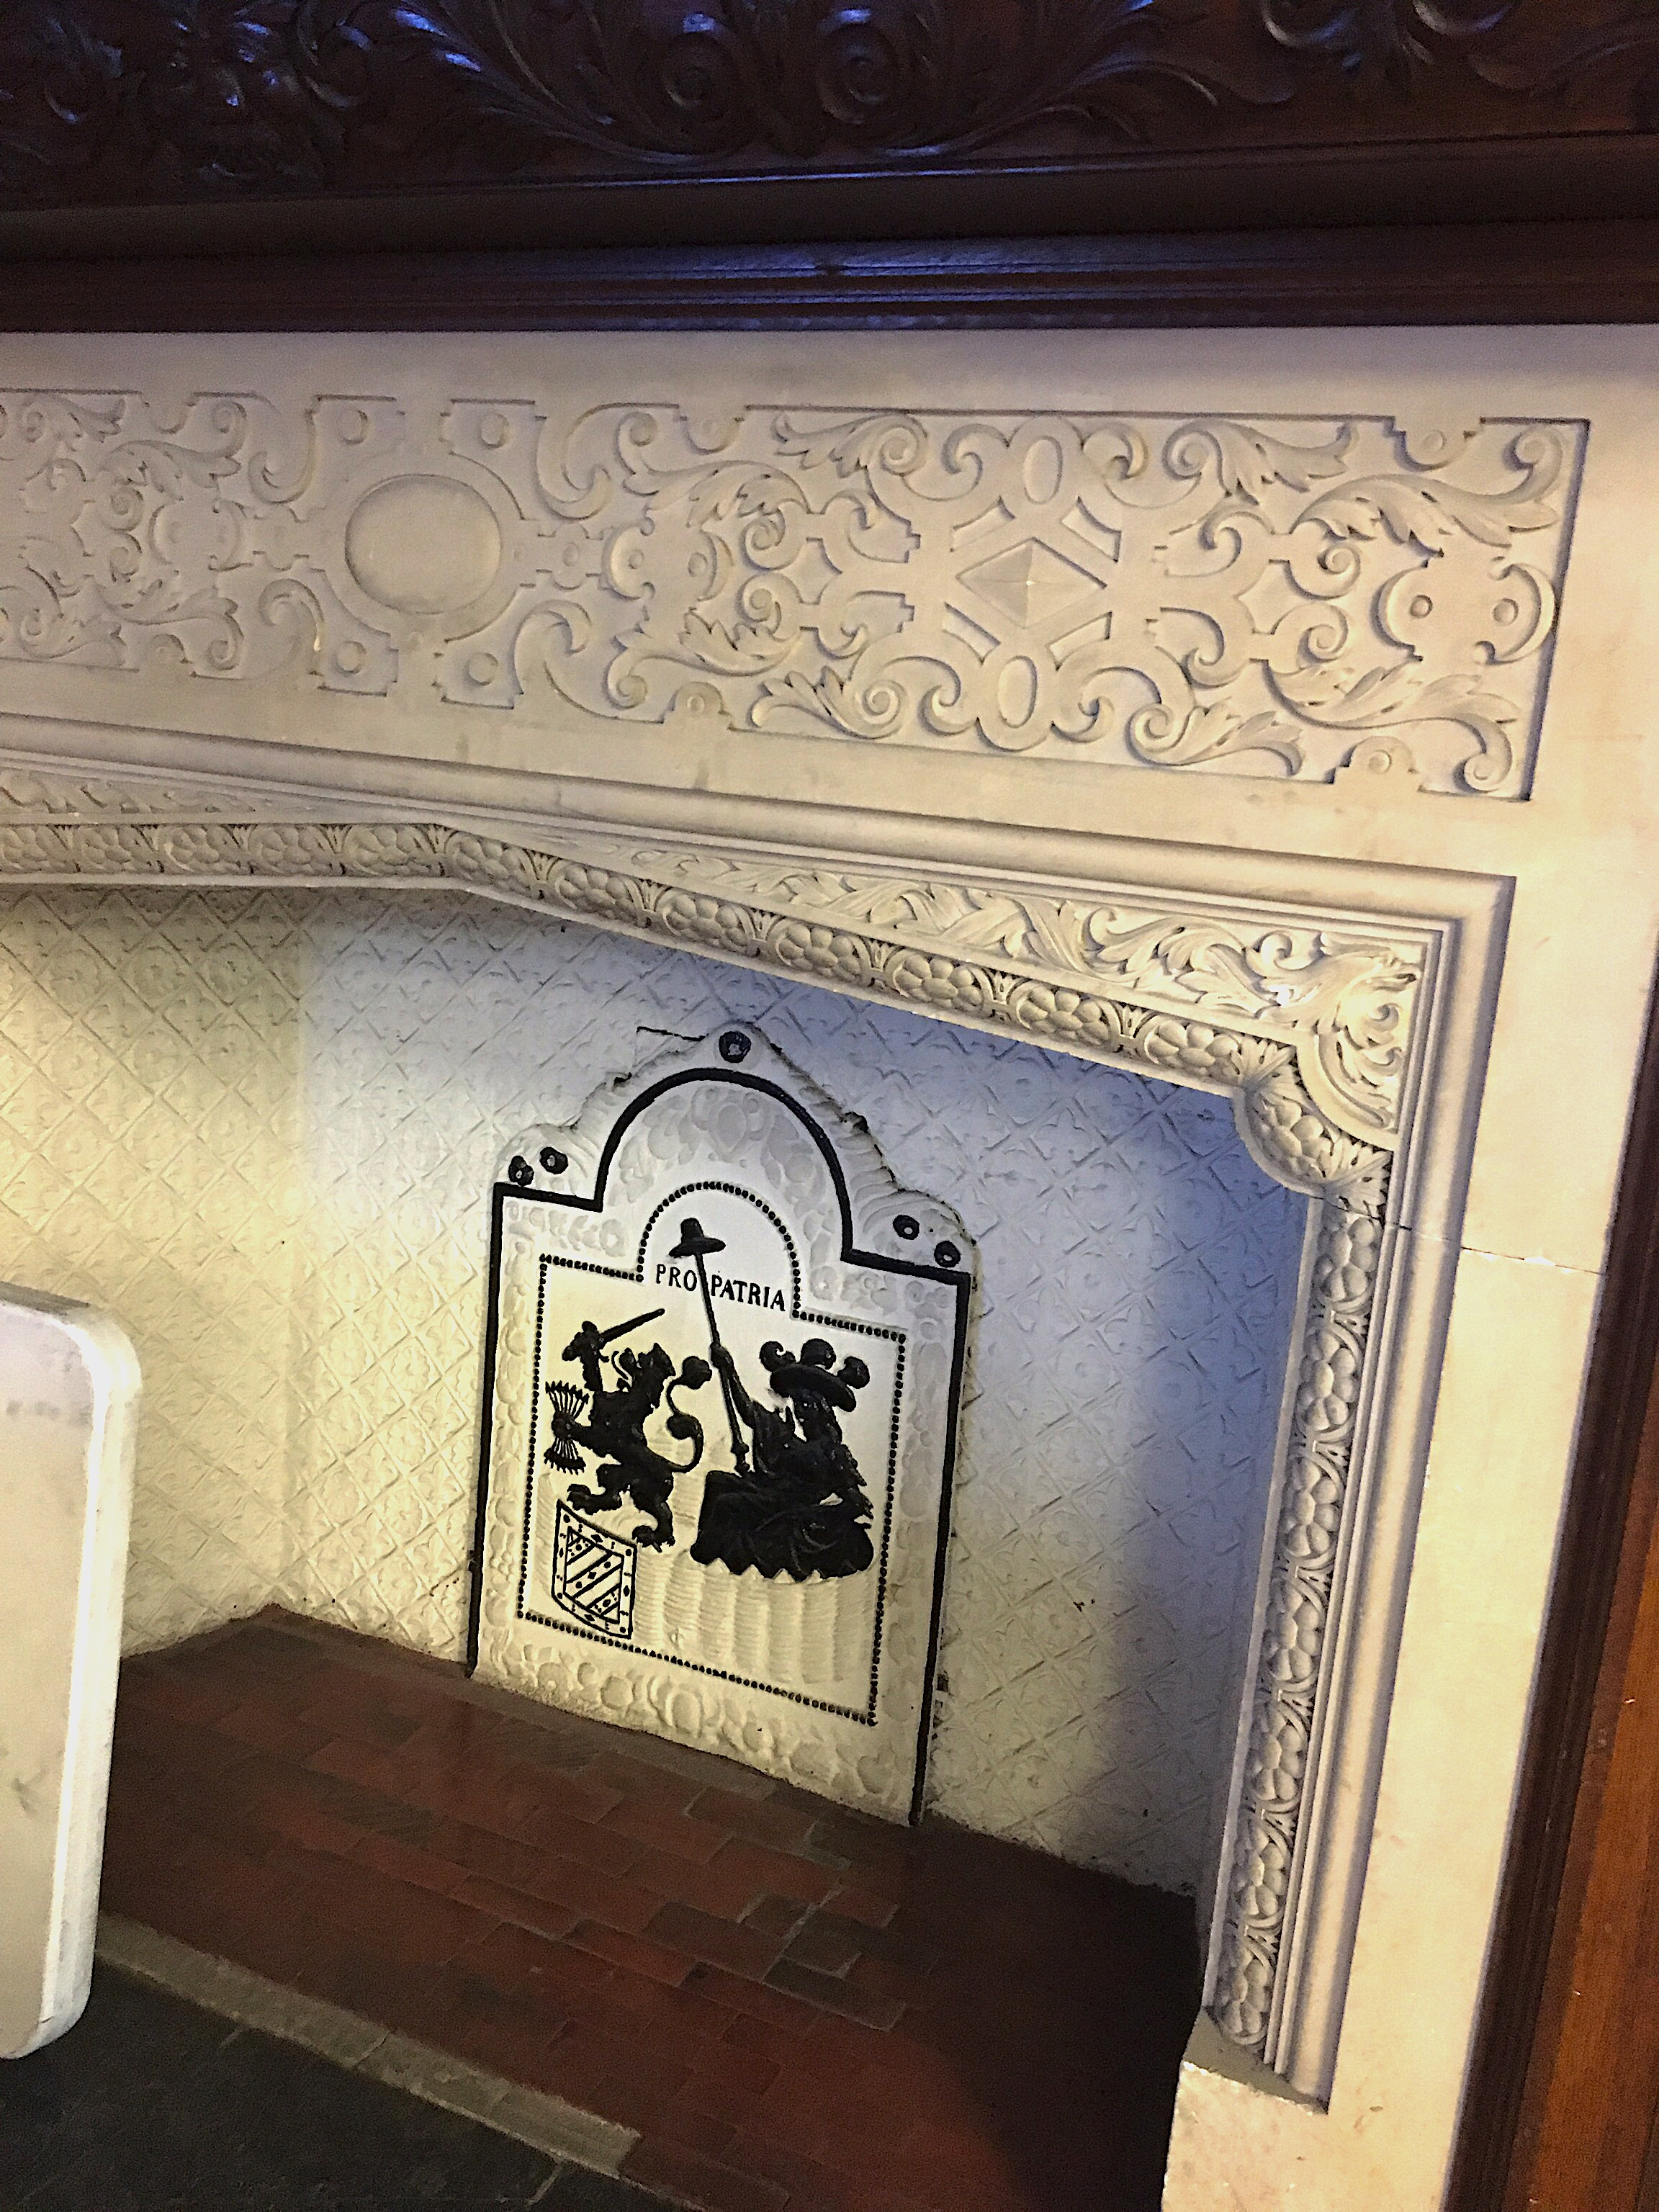 Replica fireplace inspired by Wakhurst Place